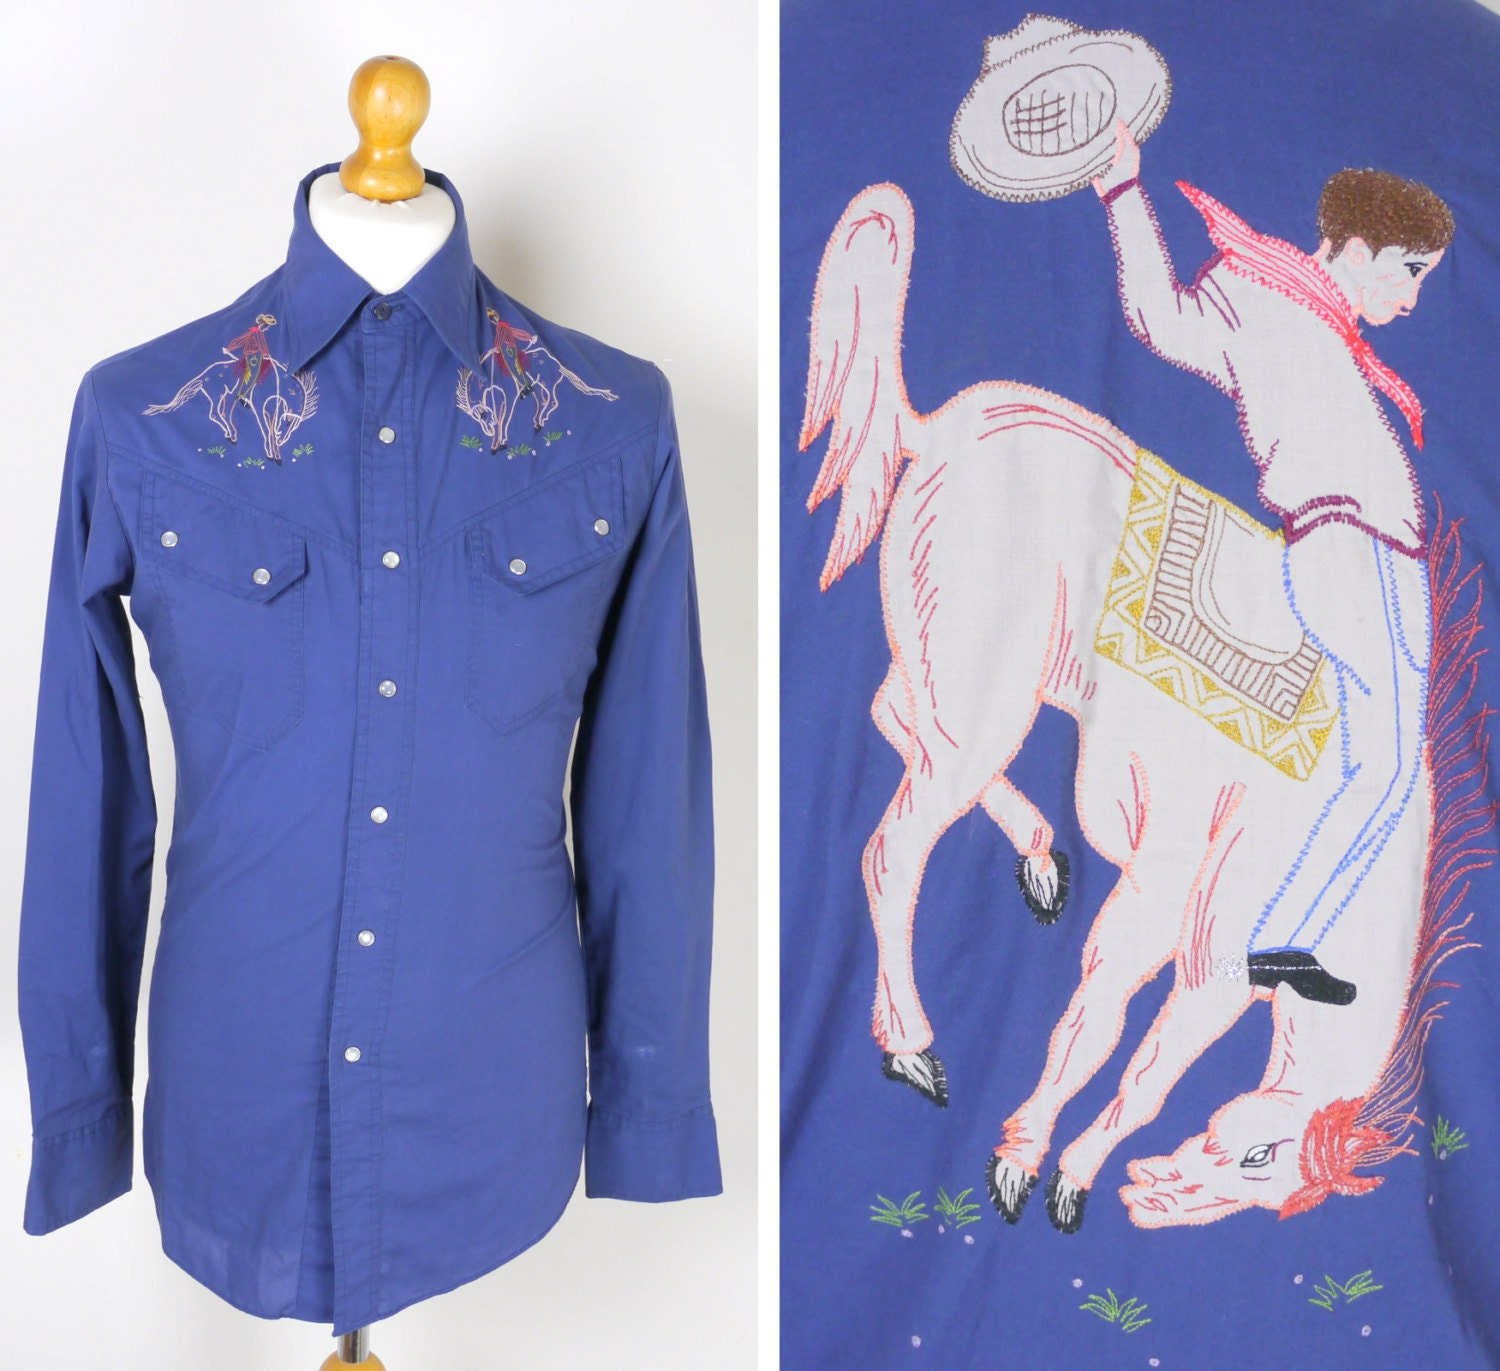 Western shirt in blue with embroidered rodeo horse riding